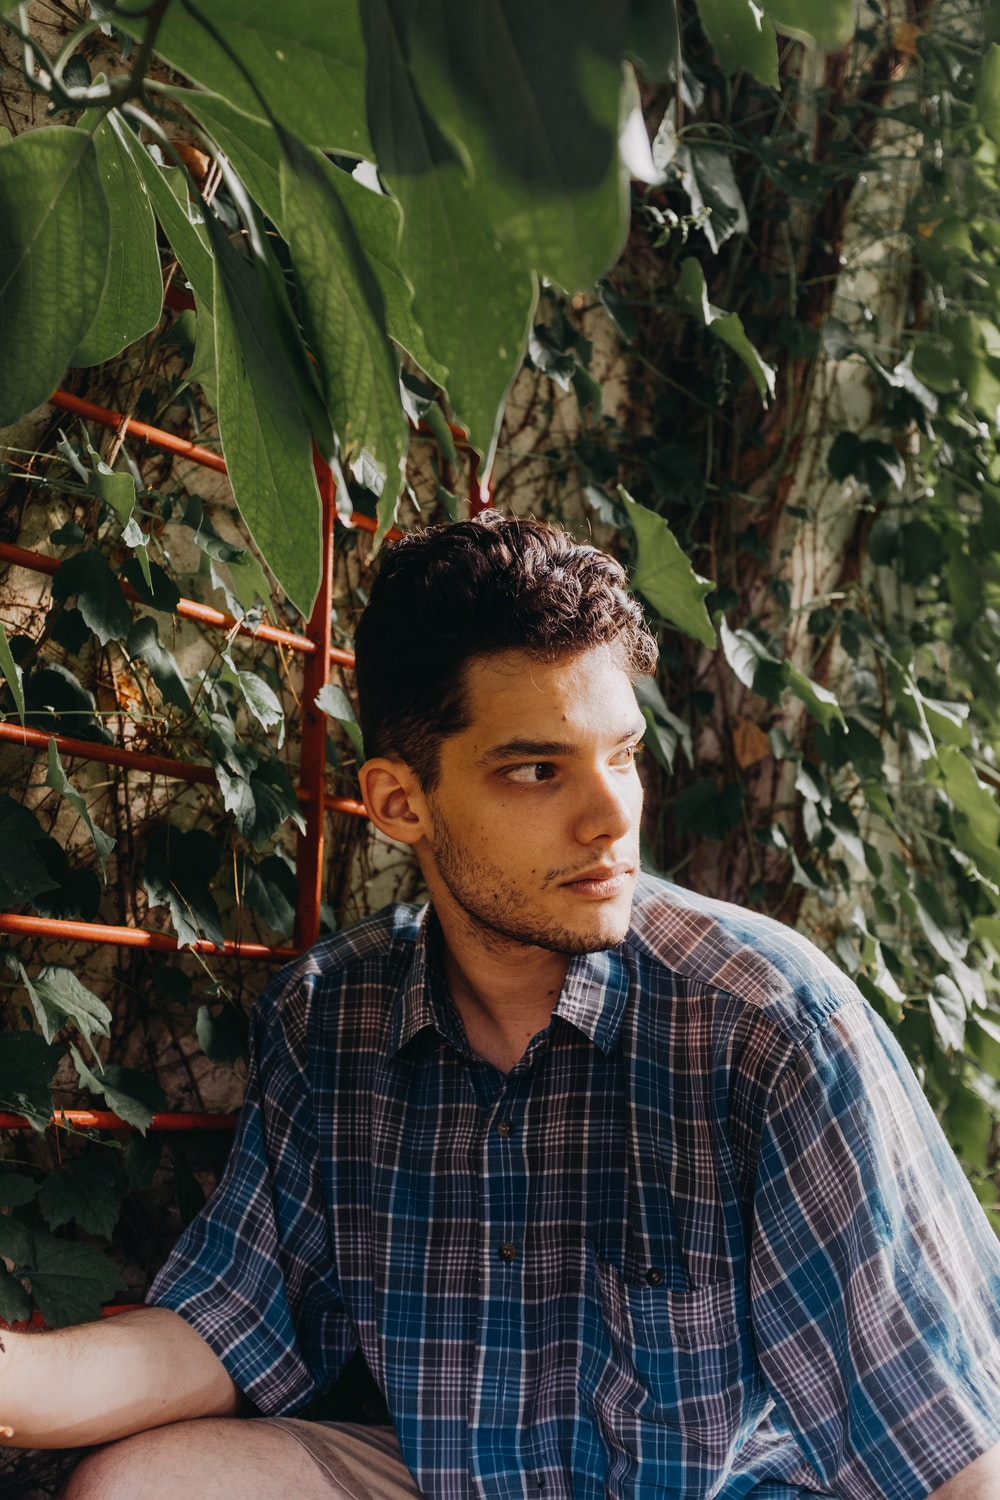 man in blue white and black plaid button up shirt standing near green leaves